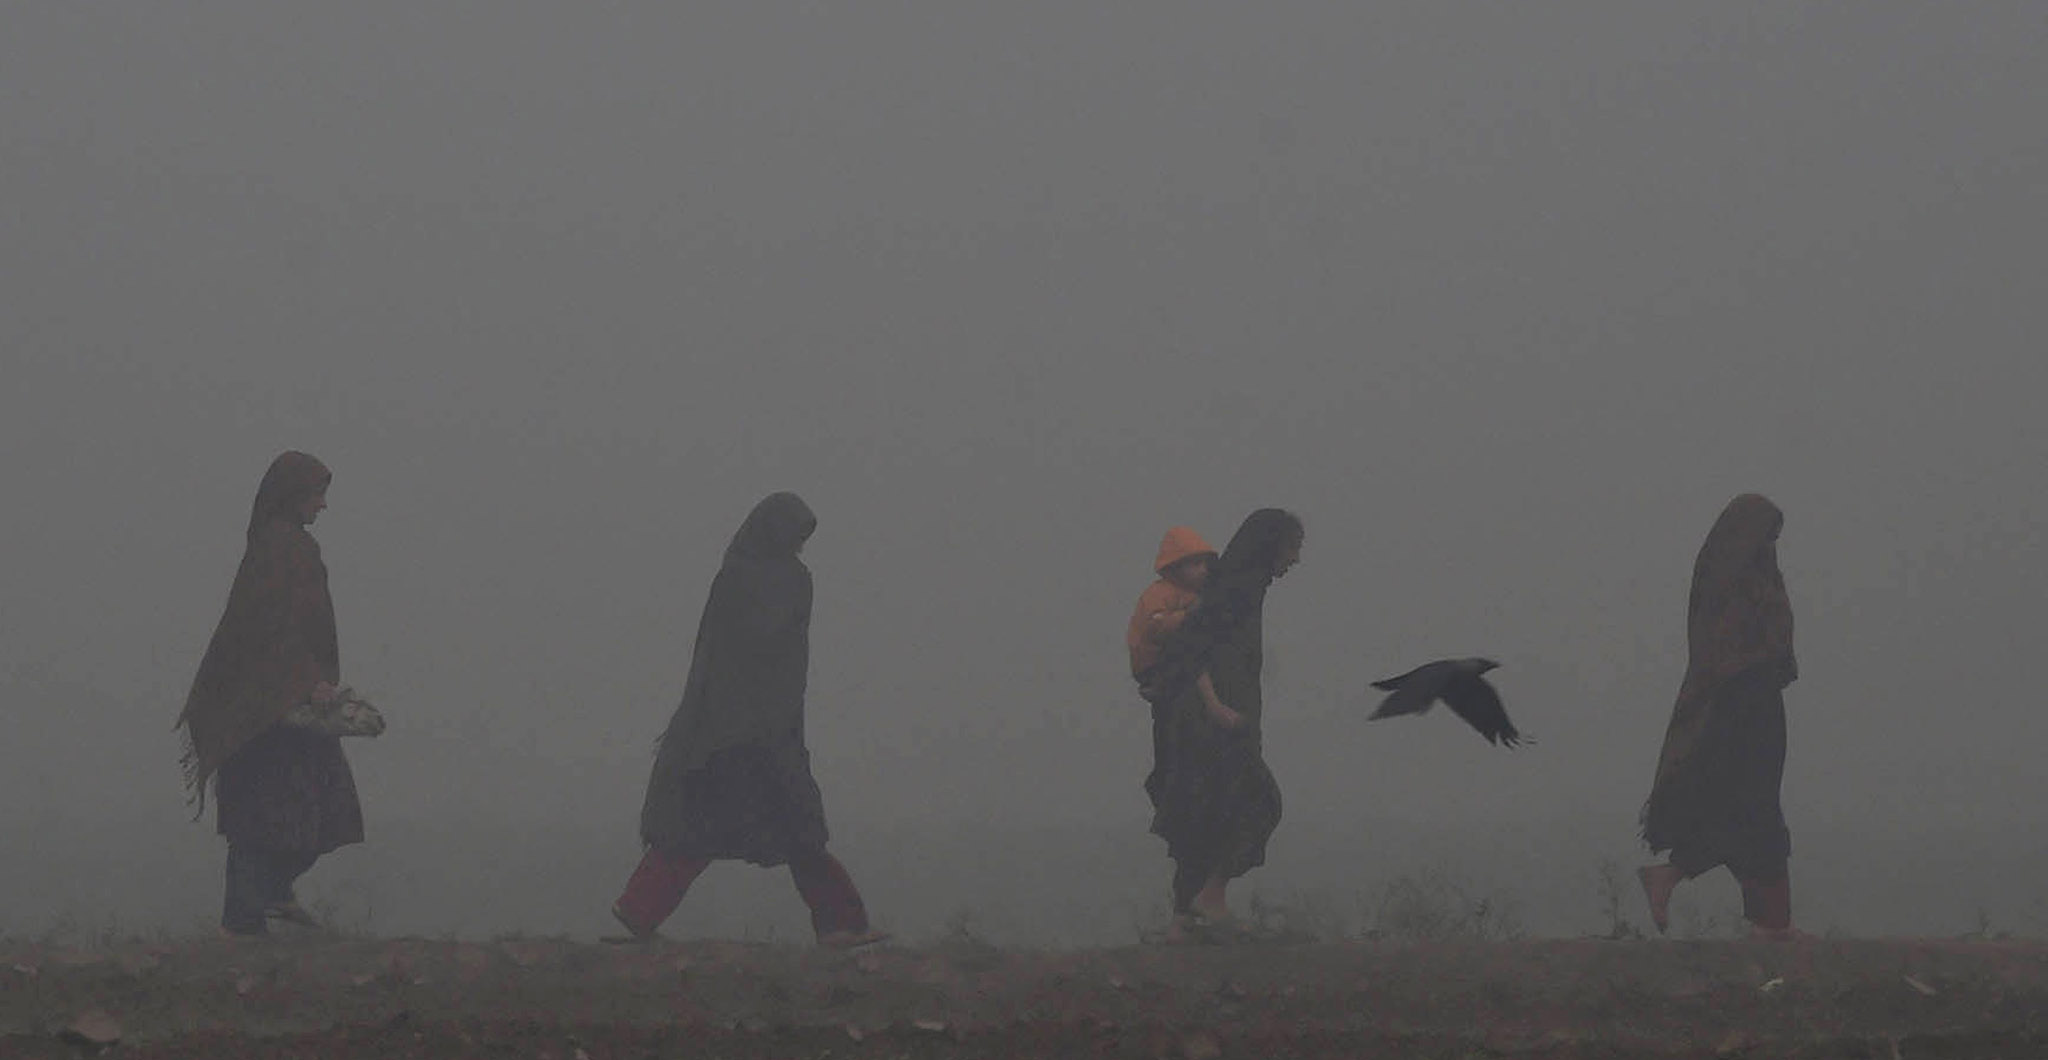 Pakistani women walk along a street on a foggy day in Lahore.